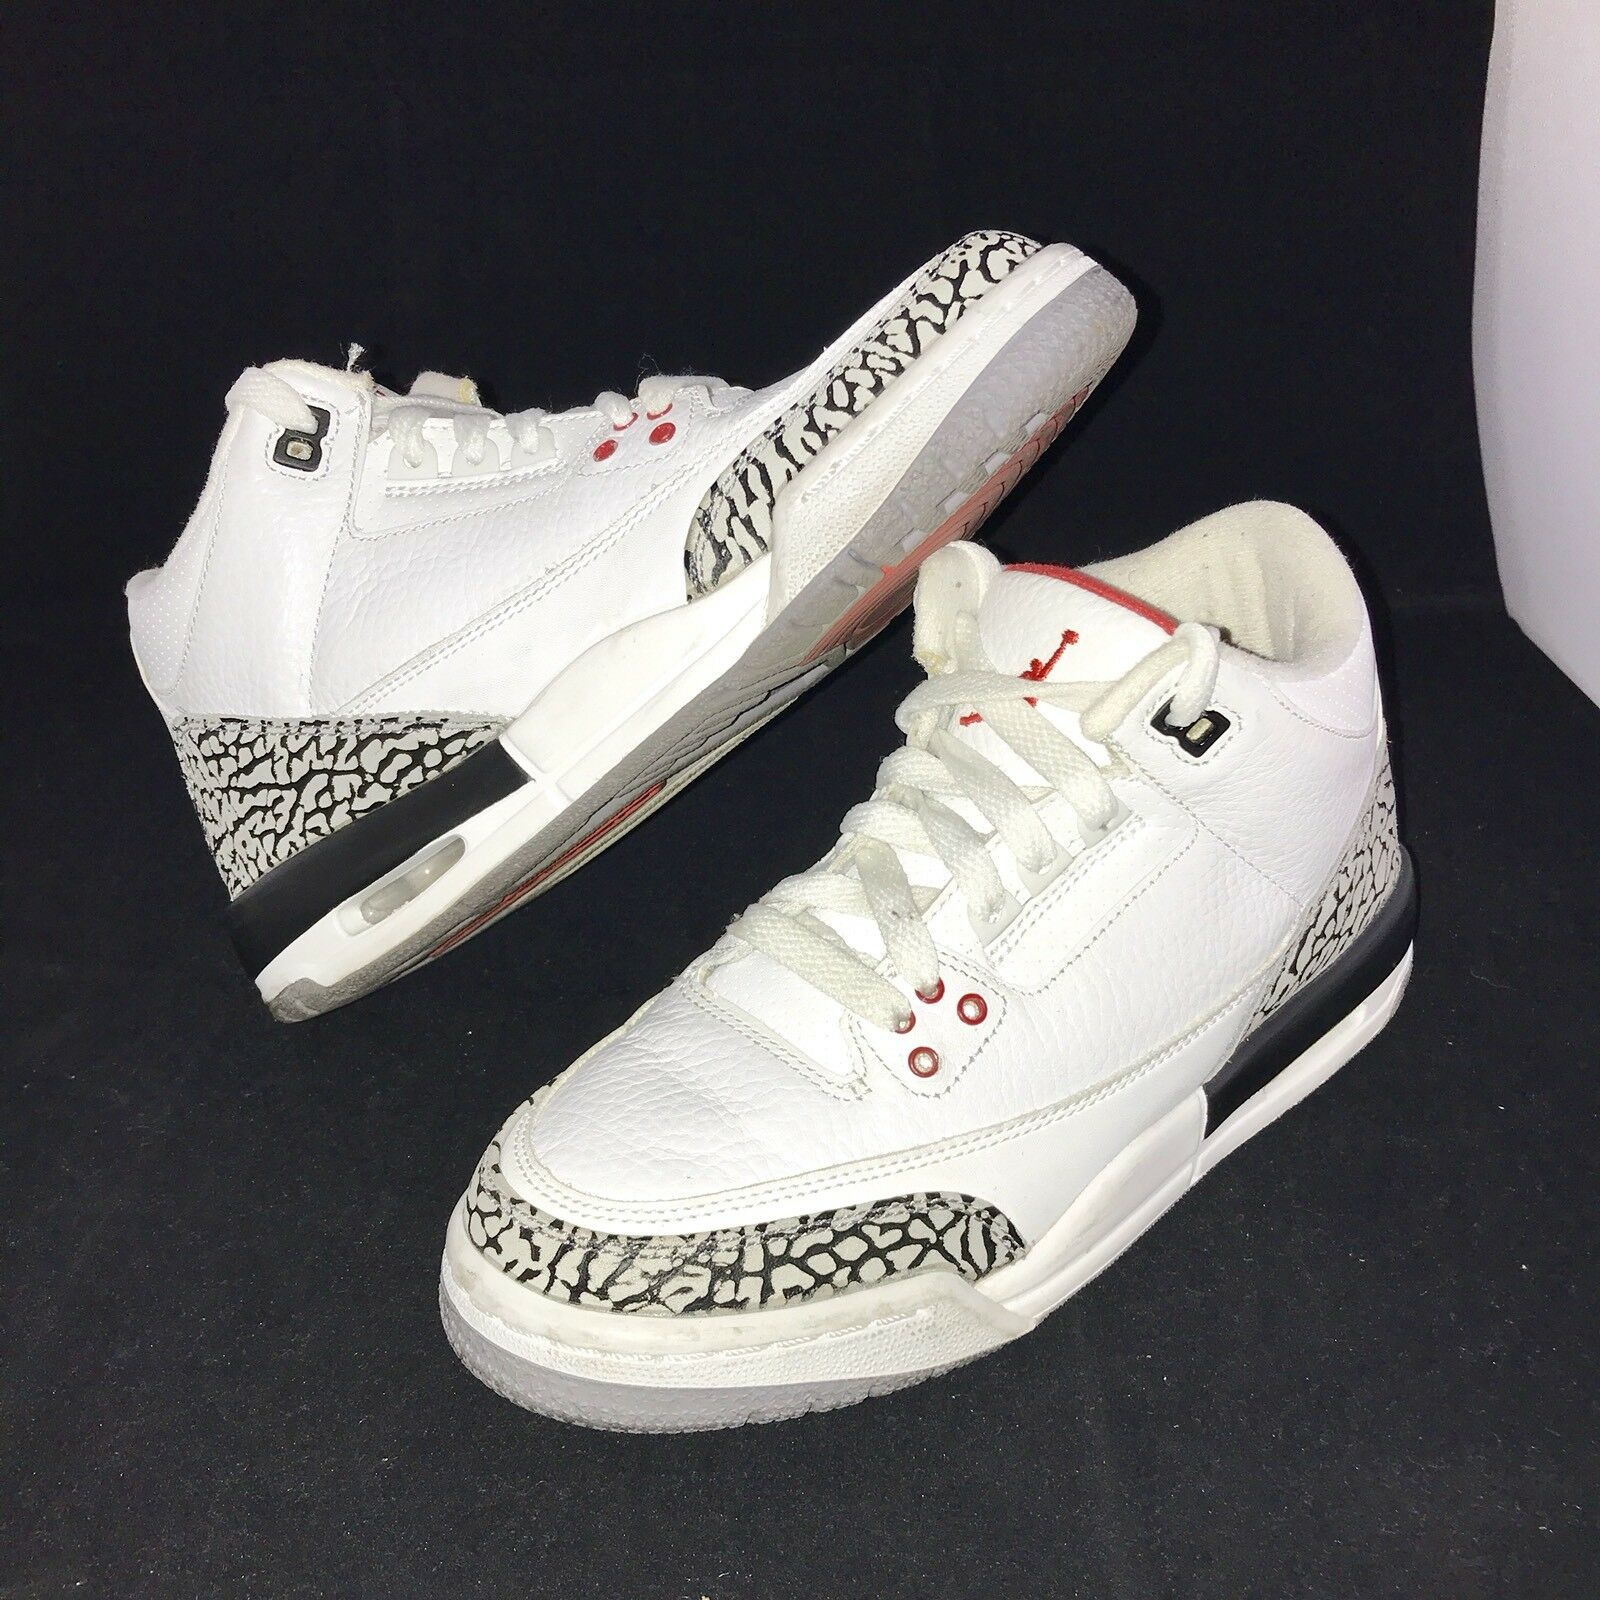 Nike Air Jordan III 3 Retro GS 1988 88 WHITE CEMENT GREY FIRE RED BLACK 5.5Y